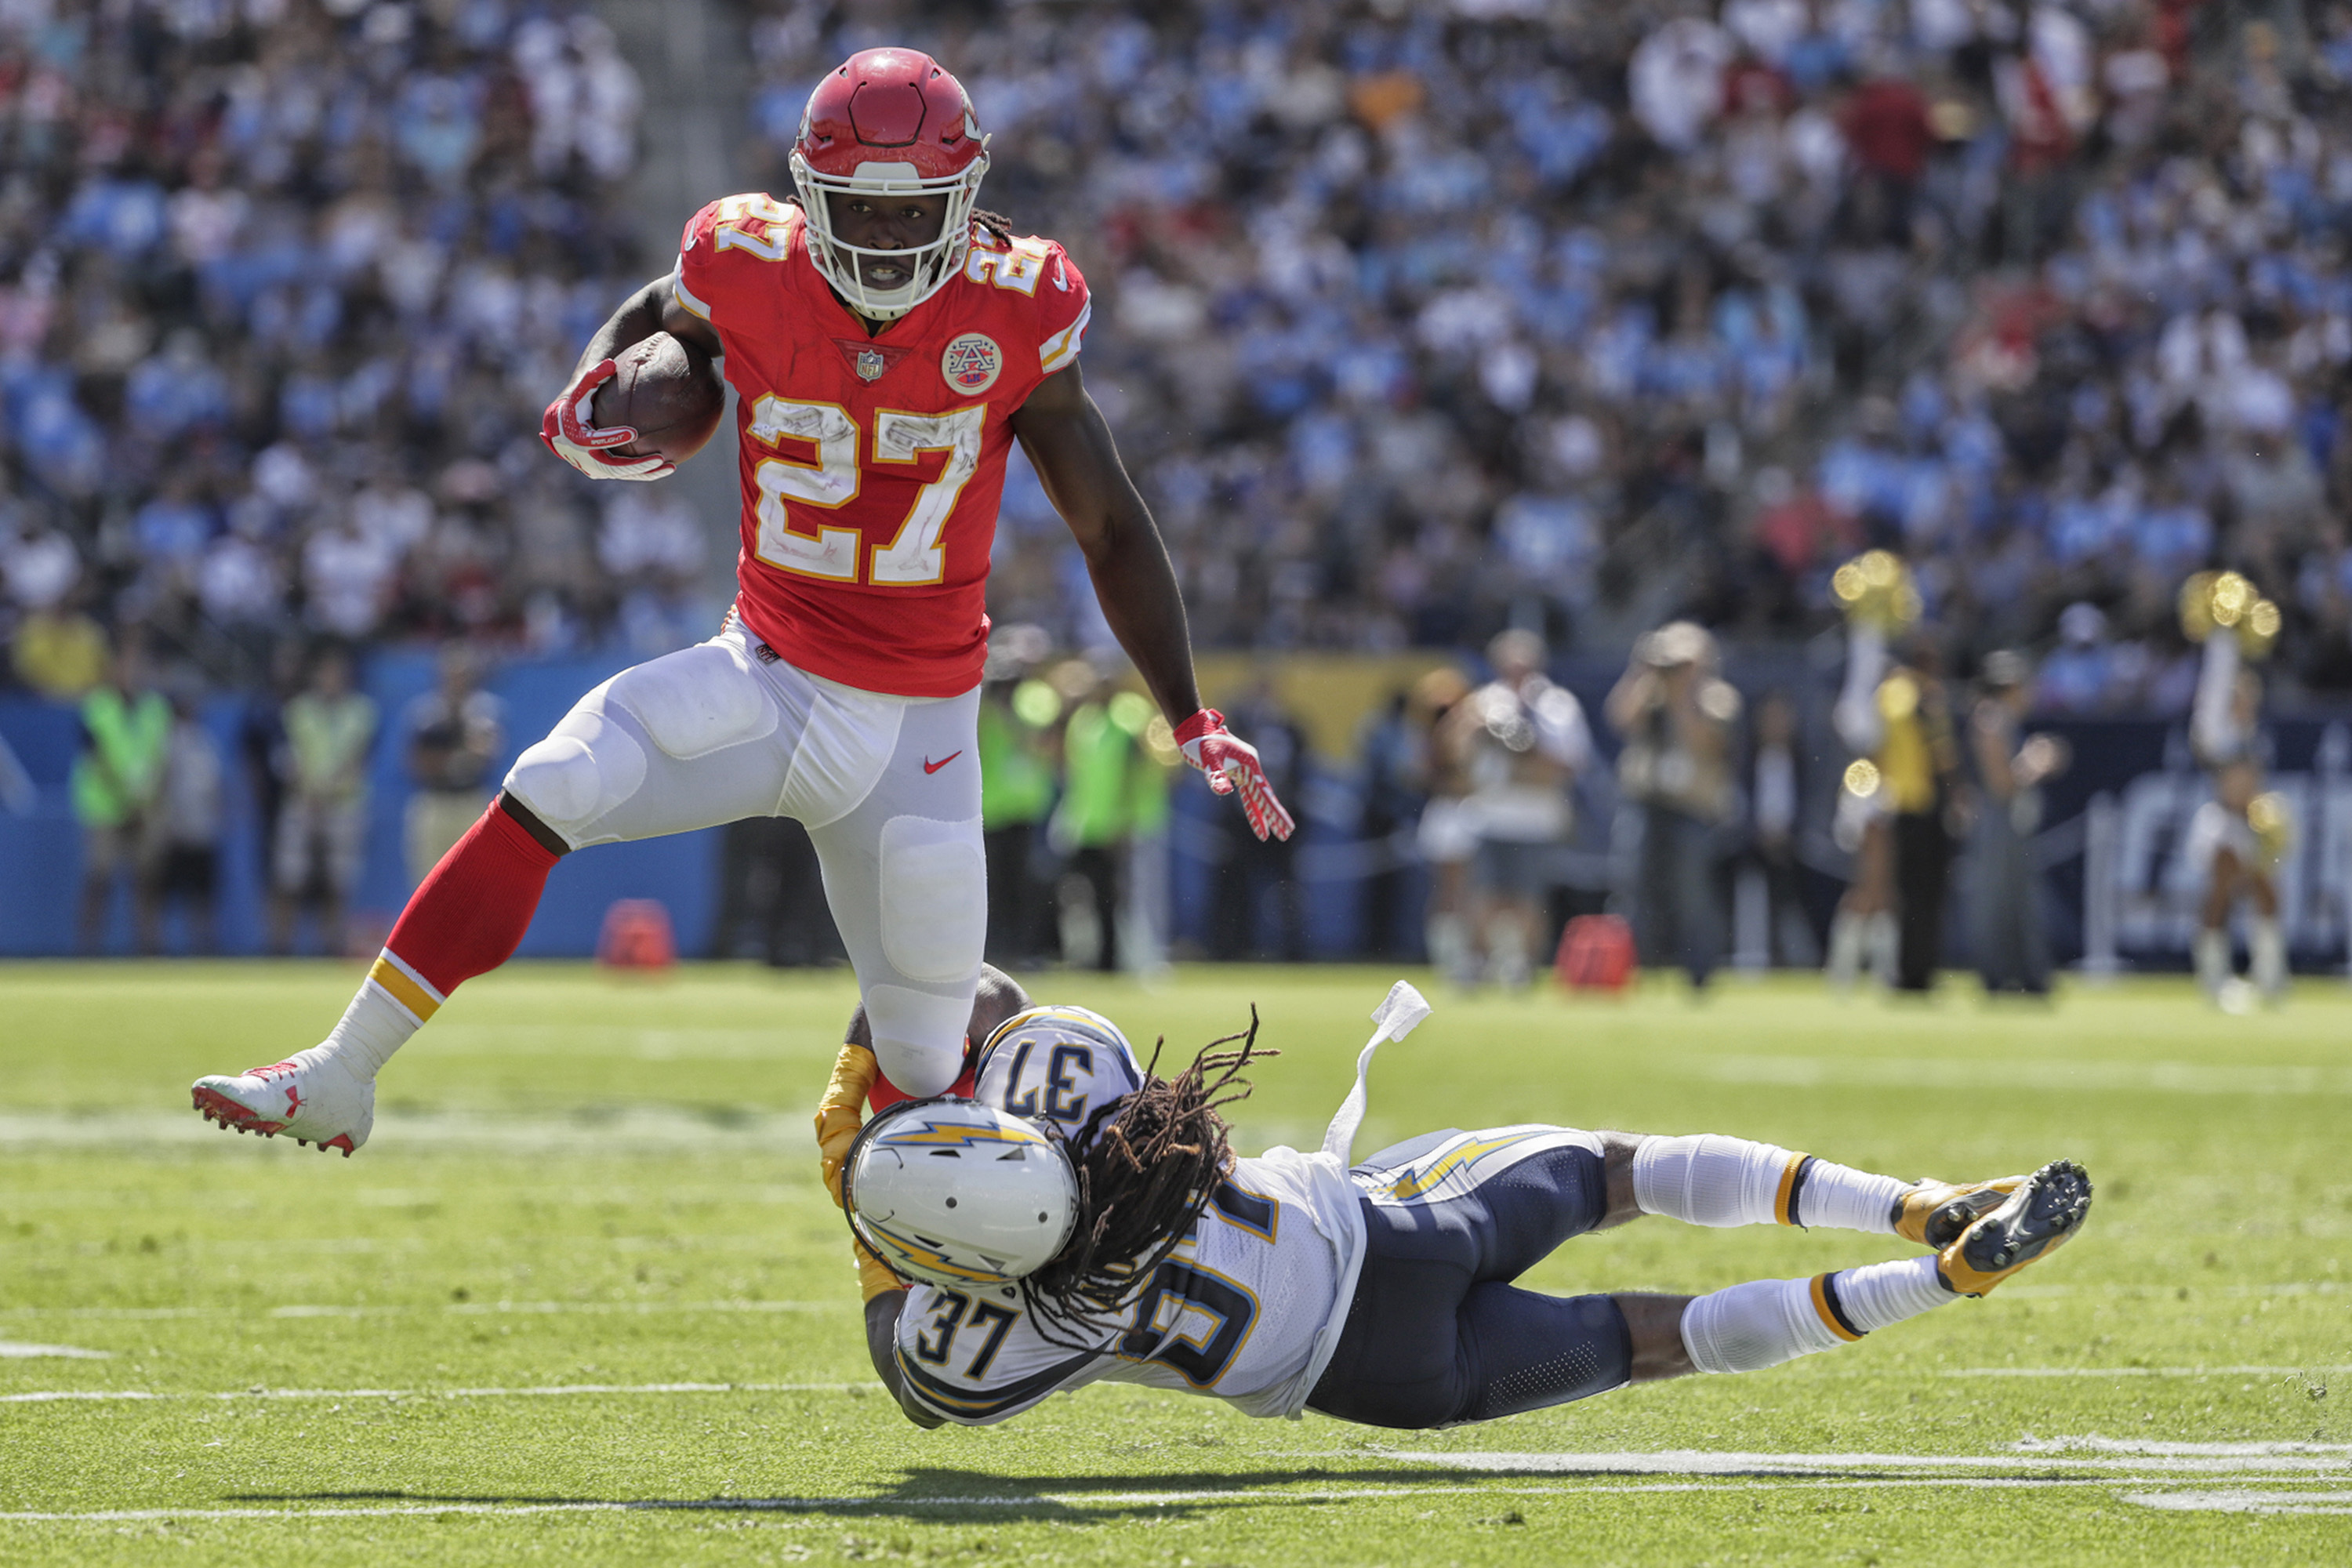 Kansas City Chiefs running back Kareem Hunt (27) slips the tackle of Los Angeles Chargers safety Jahleel Addae during a first-quarter run at StubHub Center in Carson, Calif., on Sunday, Sept. 24, 2017. The Chiefs won, 24-10. (Robert Gauthier/Los Angeles Times/TNS)